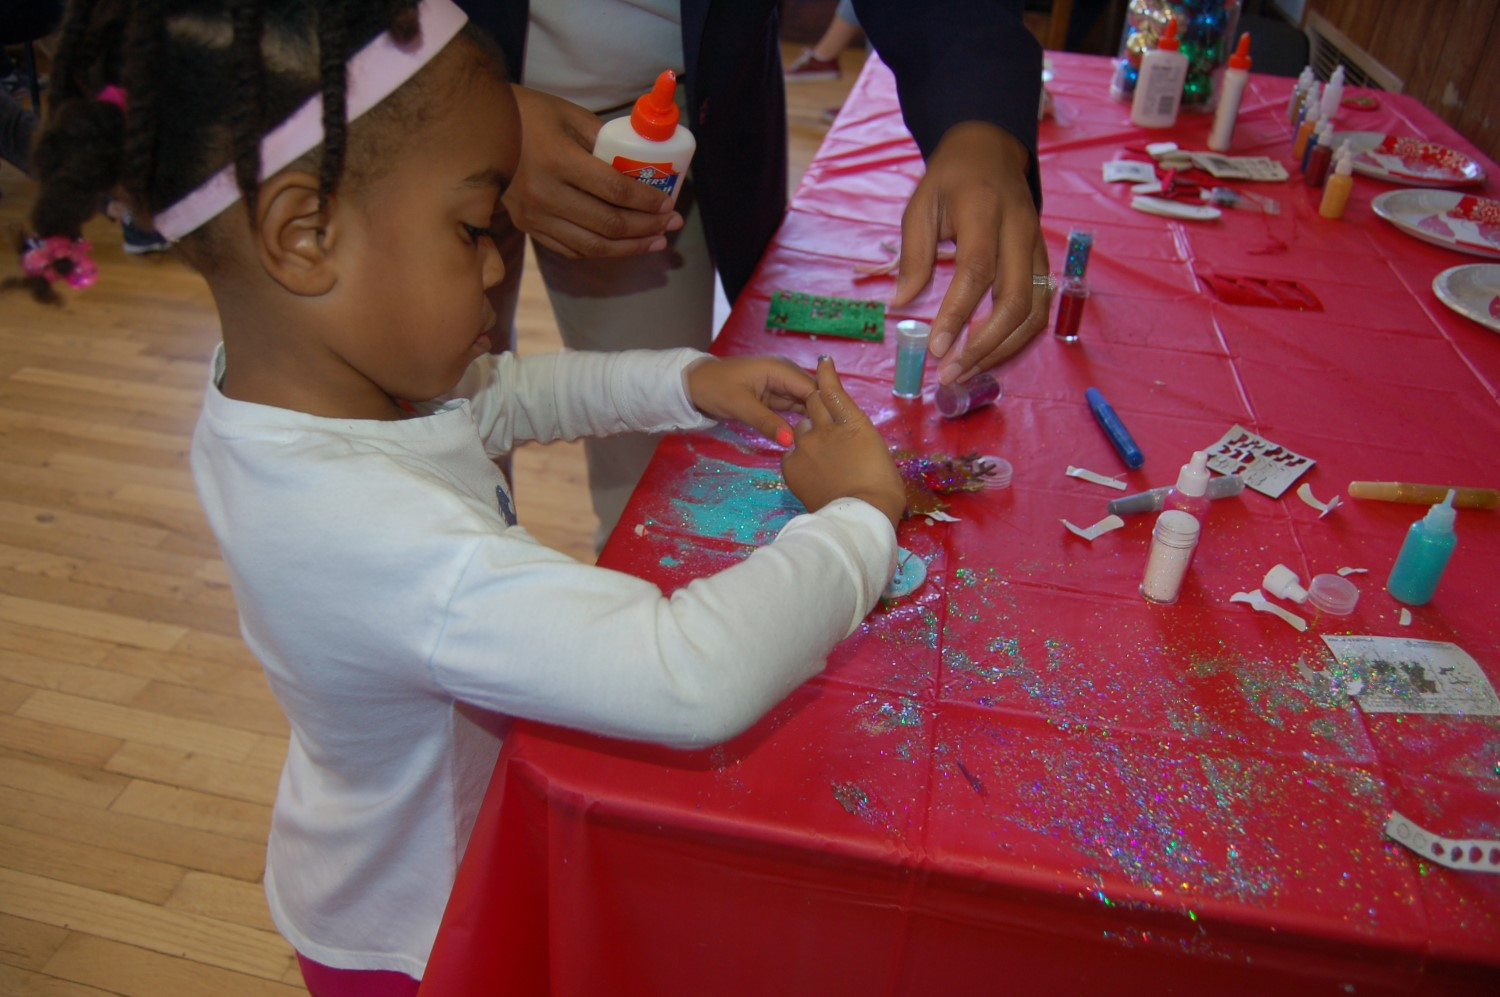 Kids can create their own ornaments.